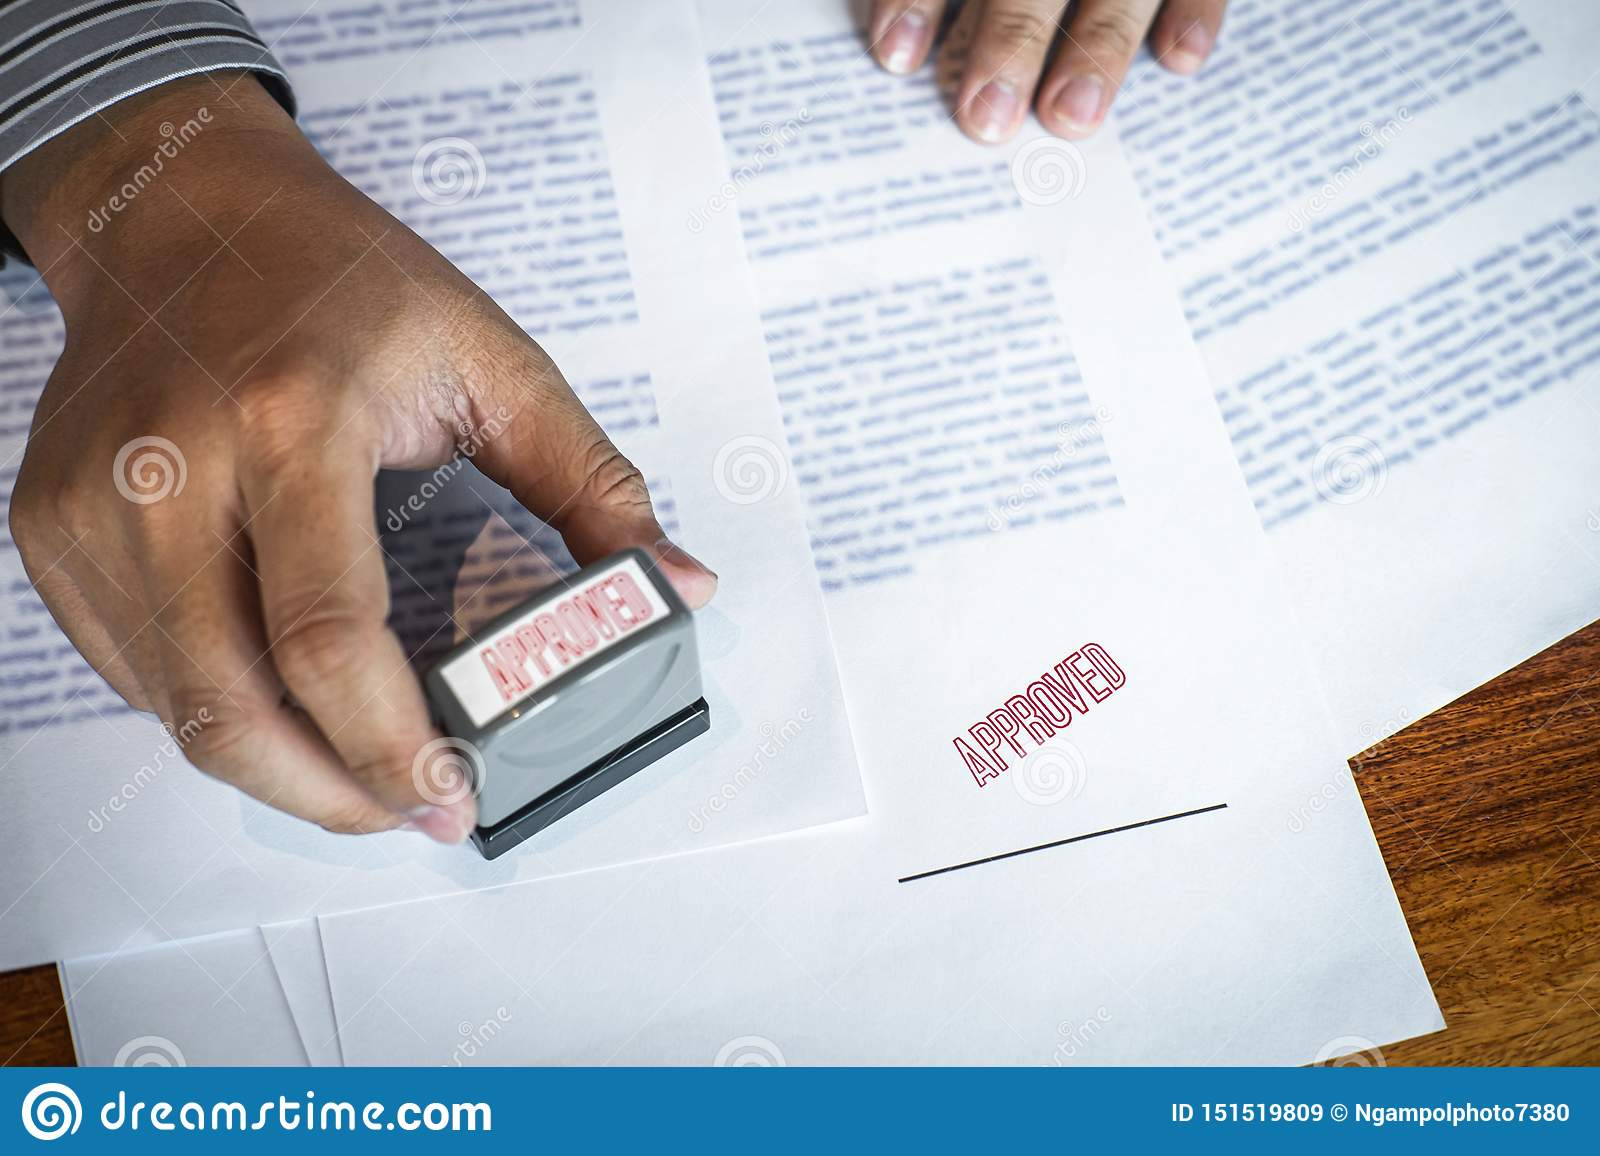 Hands of businessman stamp on paper document to approve business investment contract agreement